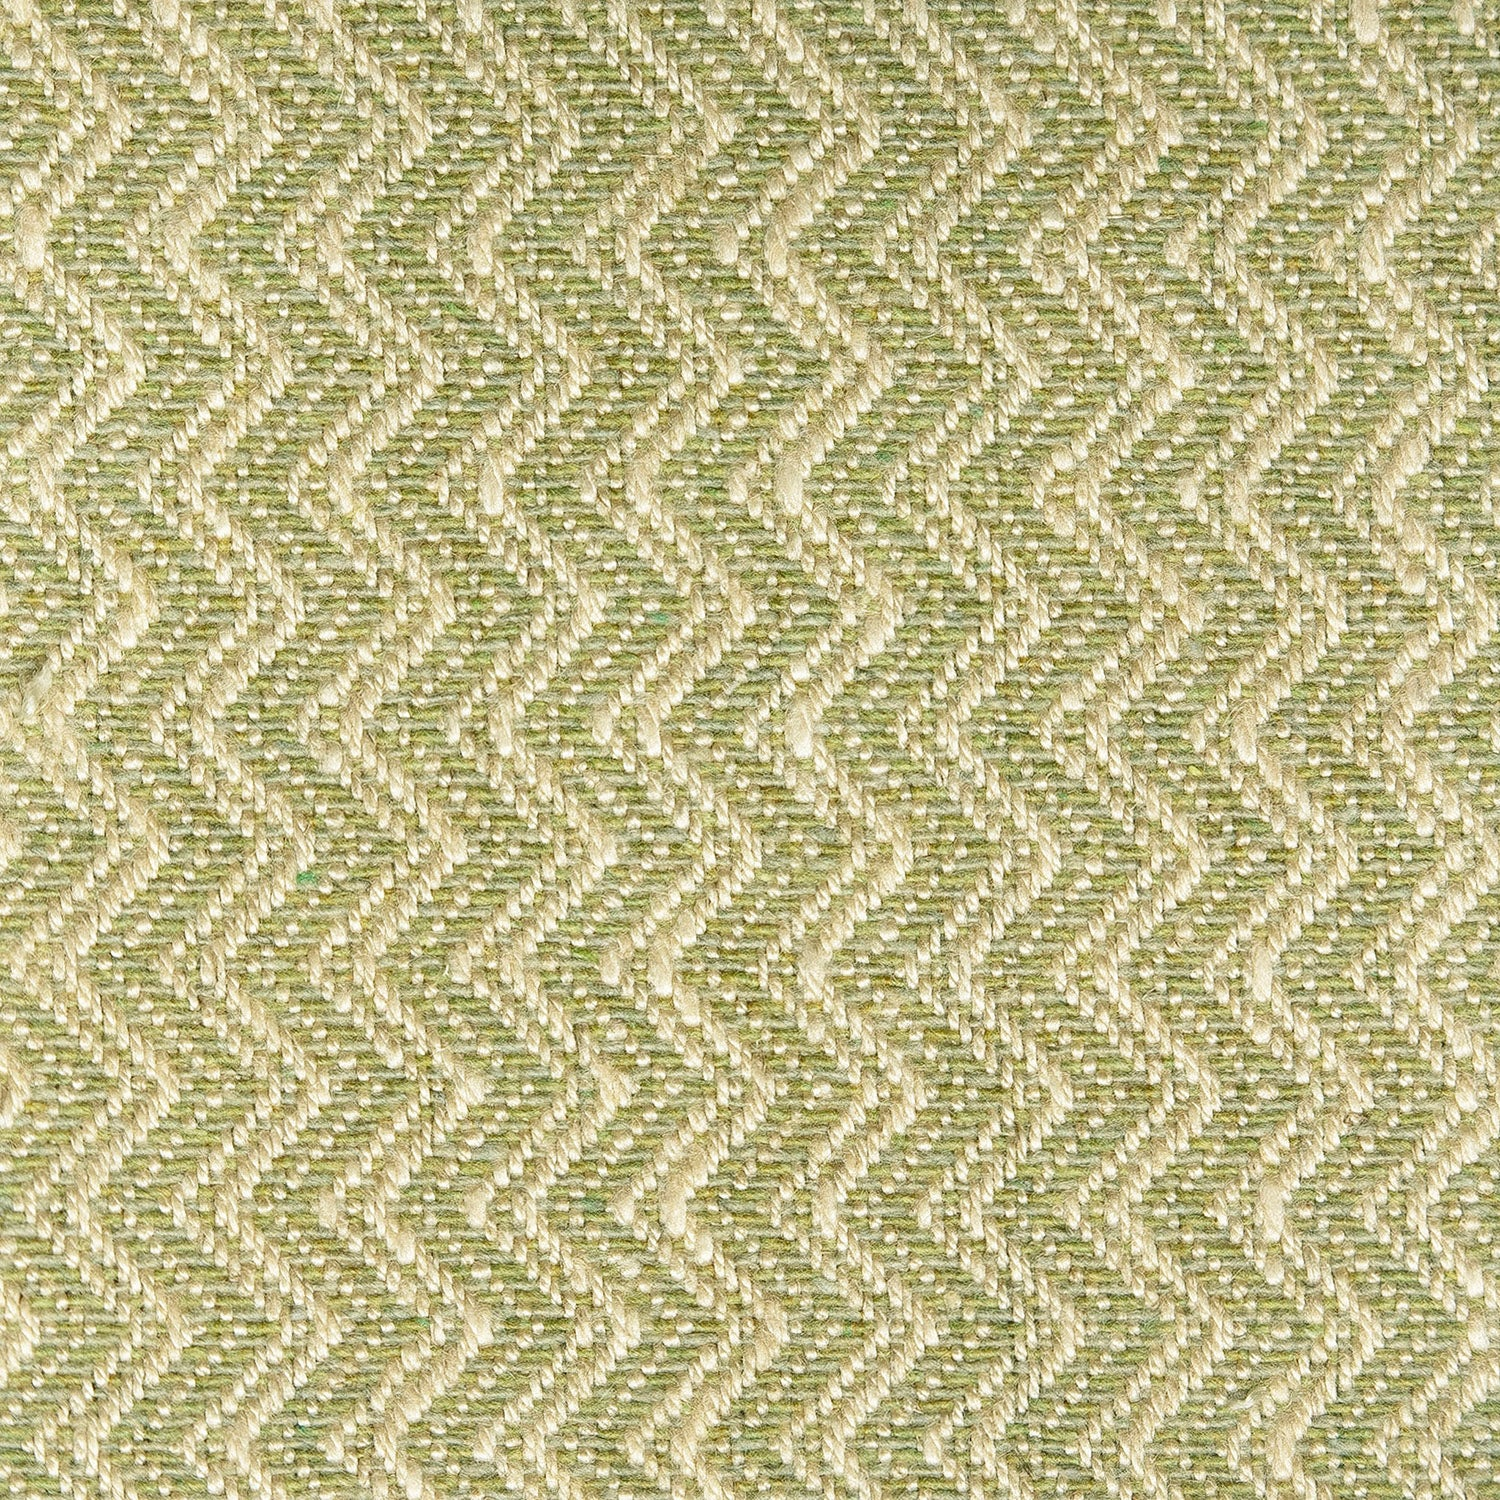 Green upholstery fabric with zig zag design for contract and domestic curtains or upholstery